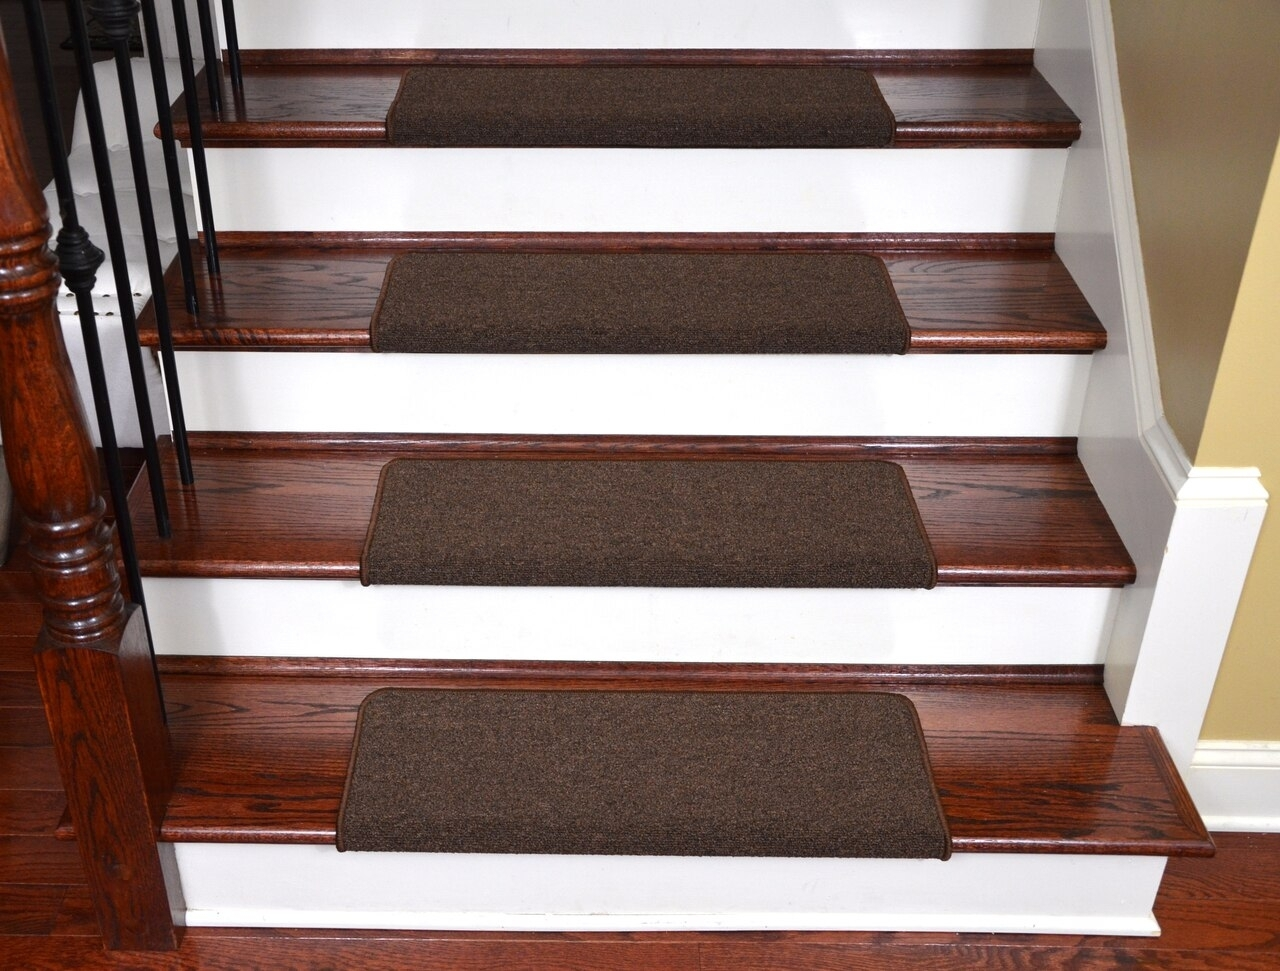 50 Bullnose Carpet Stair Treads You Ll Love In 2020 Visual Hunt   Carpet Treads For Hardwood Stairs   Walmart Com   Anti Slip   Staircase Makeover   Walmart   Stair Runners